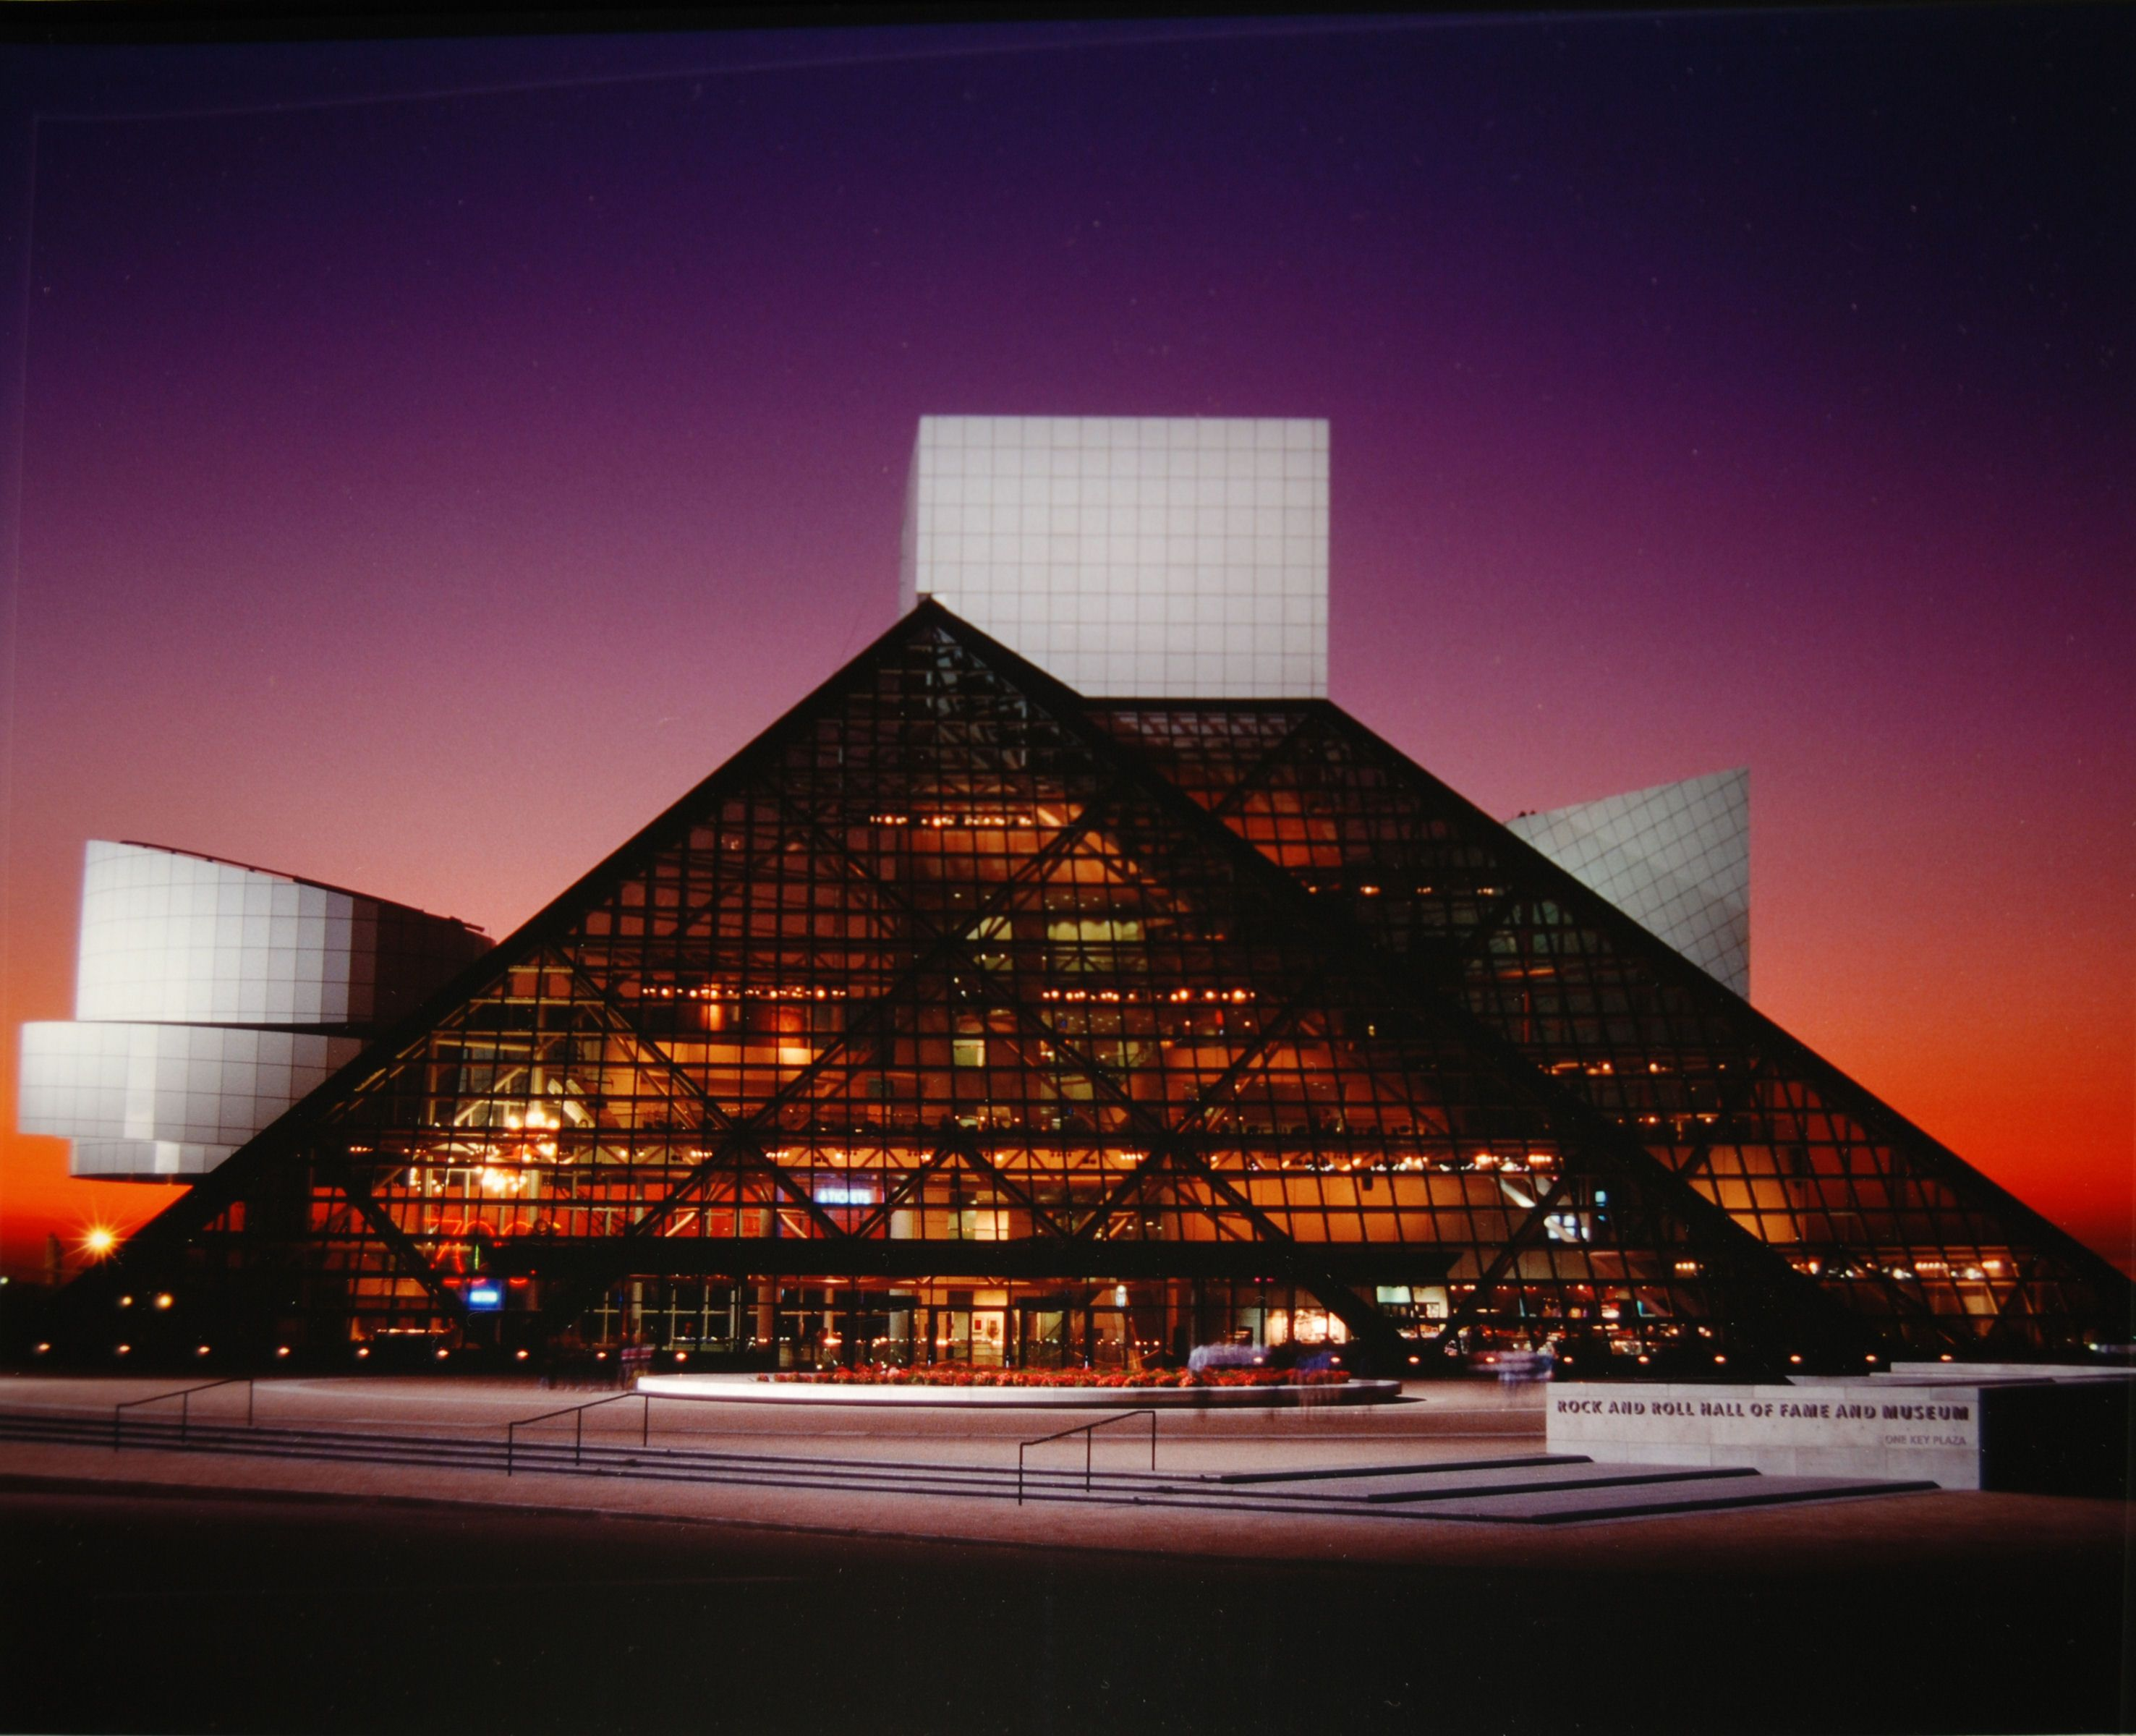 Rock and Roll Hall of Fame - I went here once, but it was day time and didn't get to see this. It looks so cool at night.